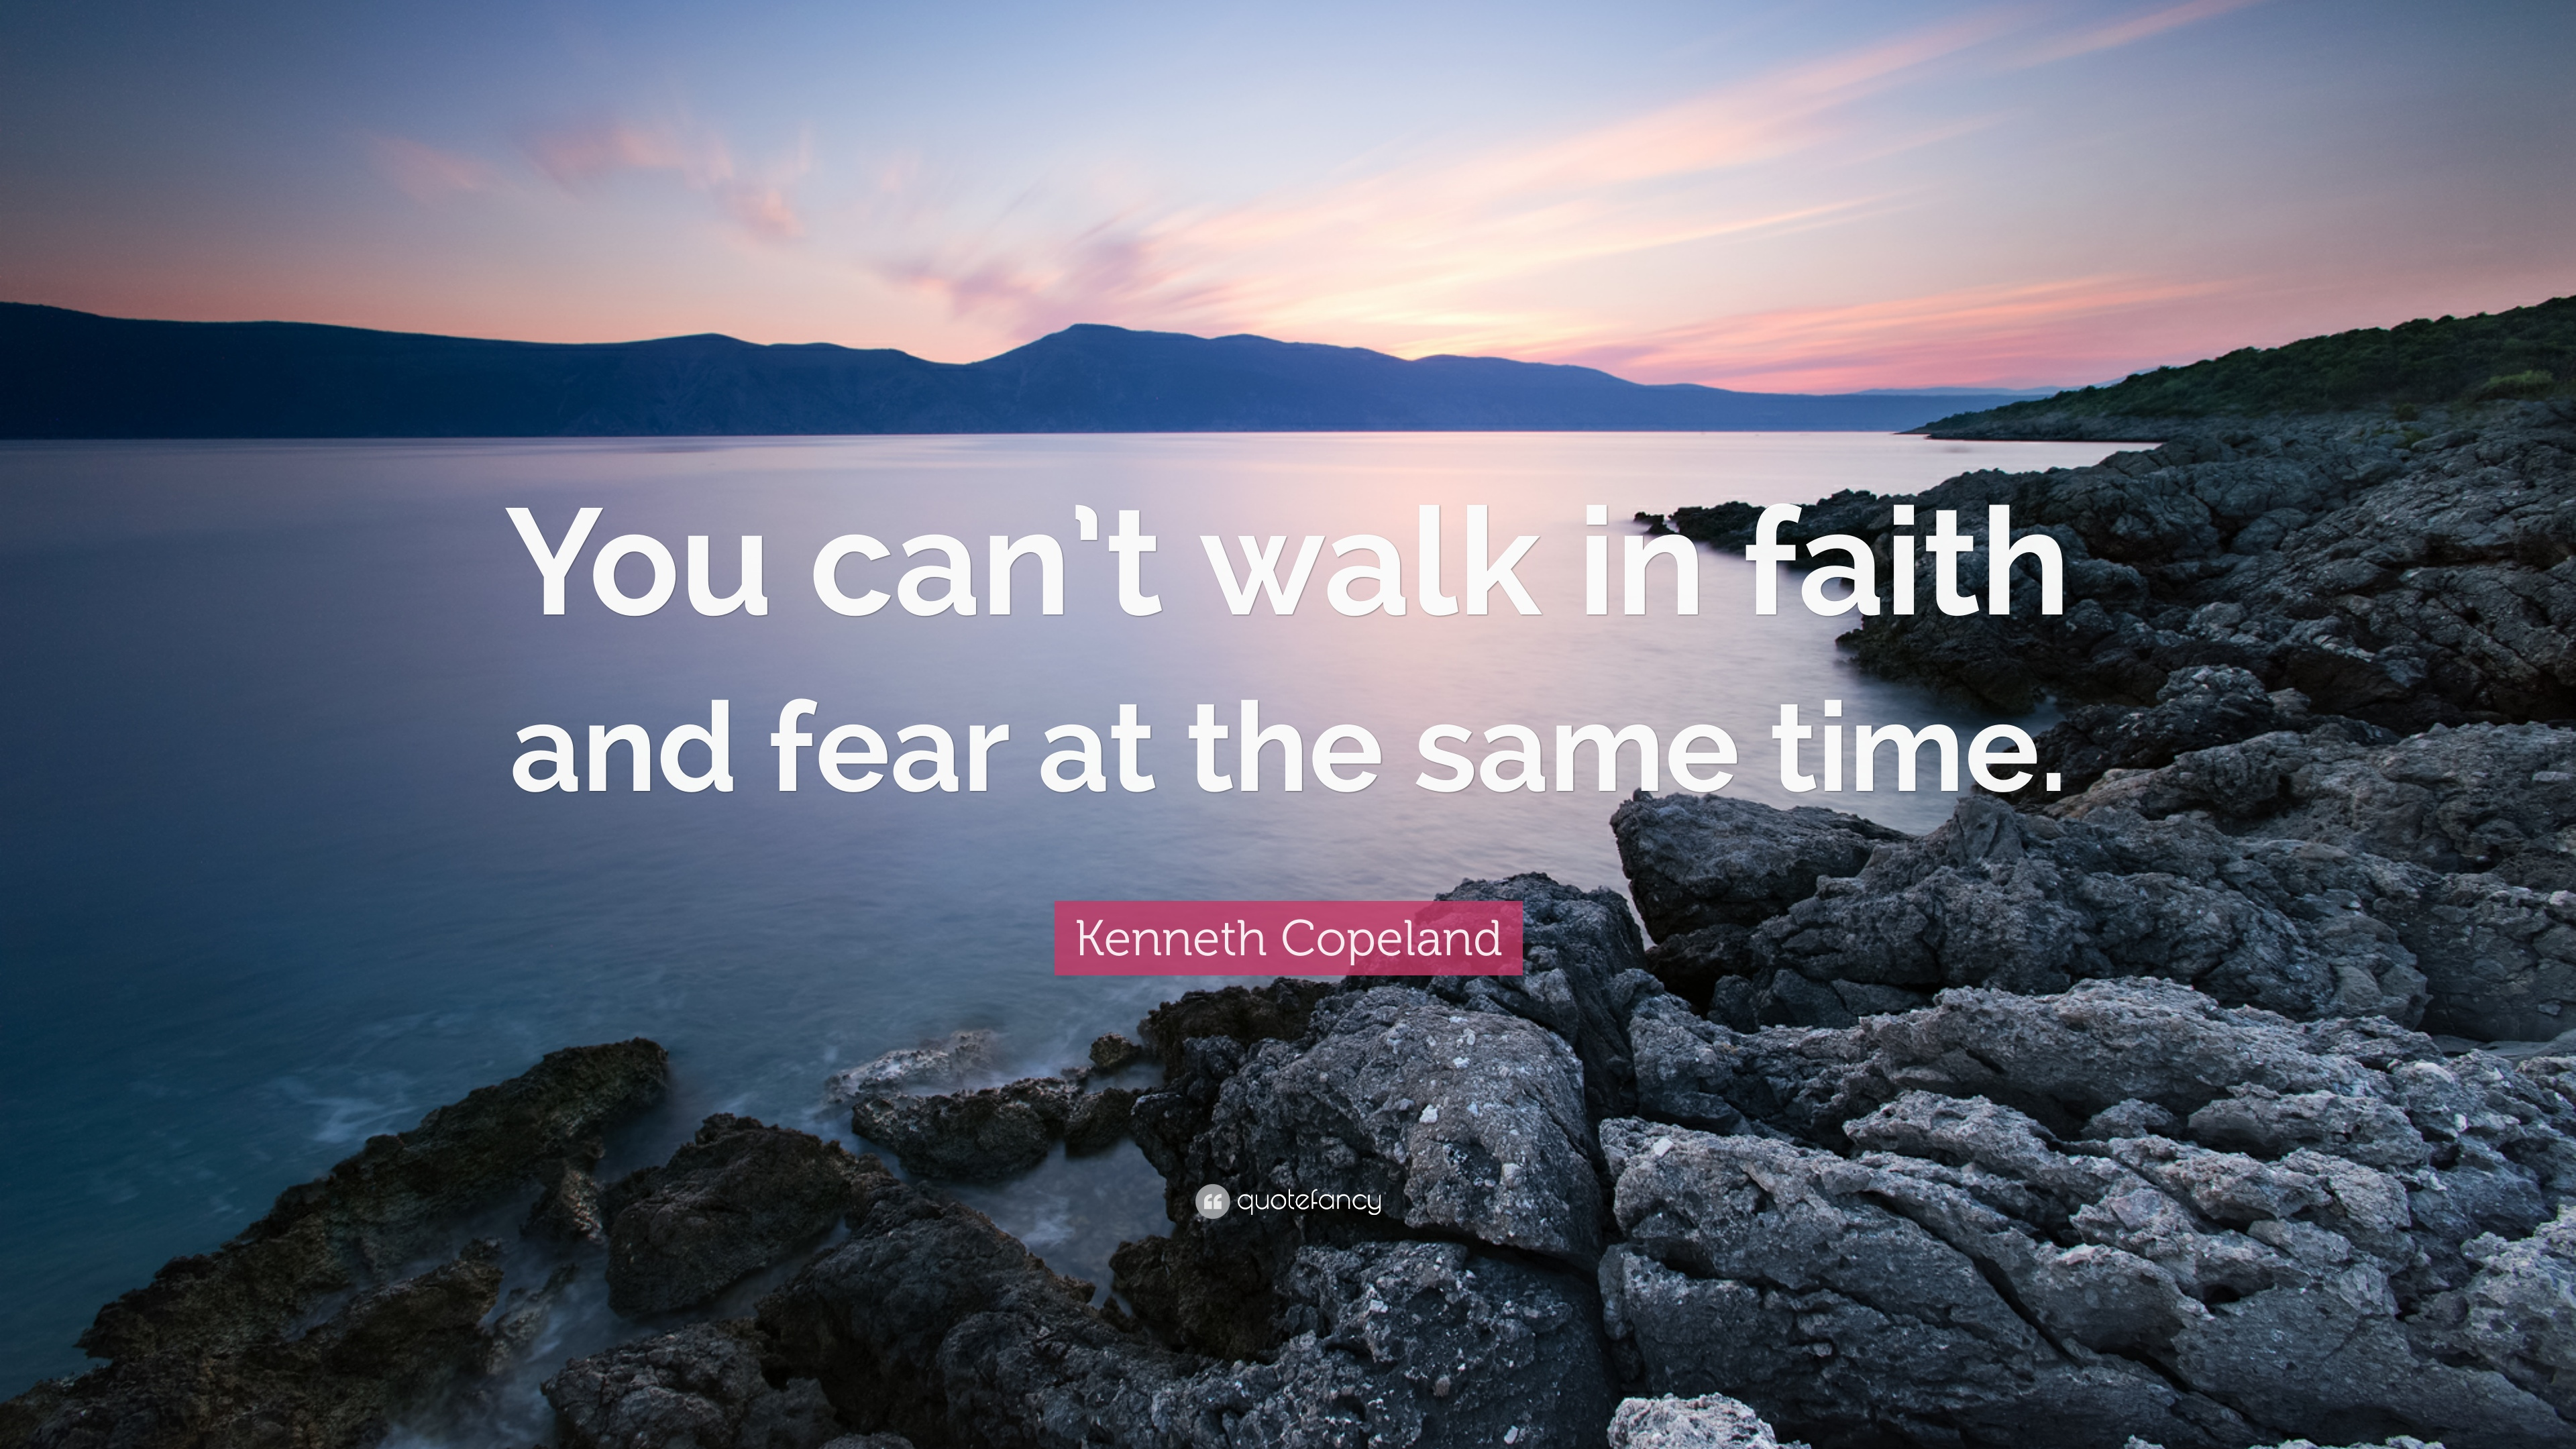 Kenneth Copeland Quote You Cant Walk In Faith And Fear At The